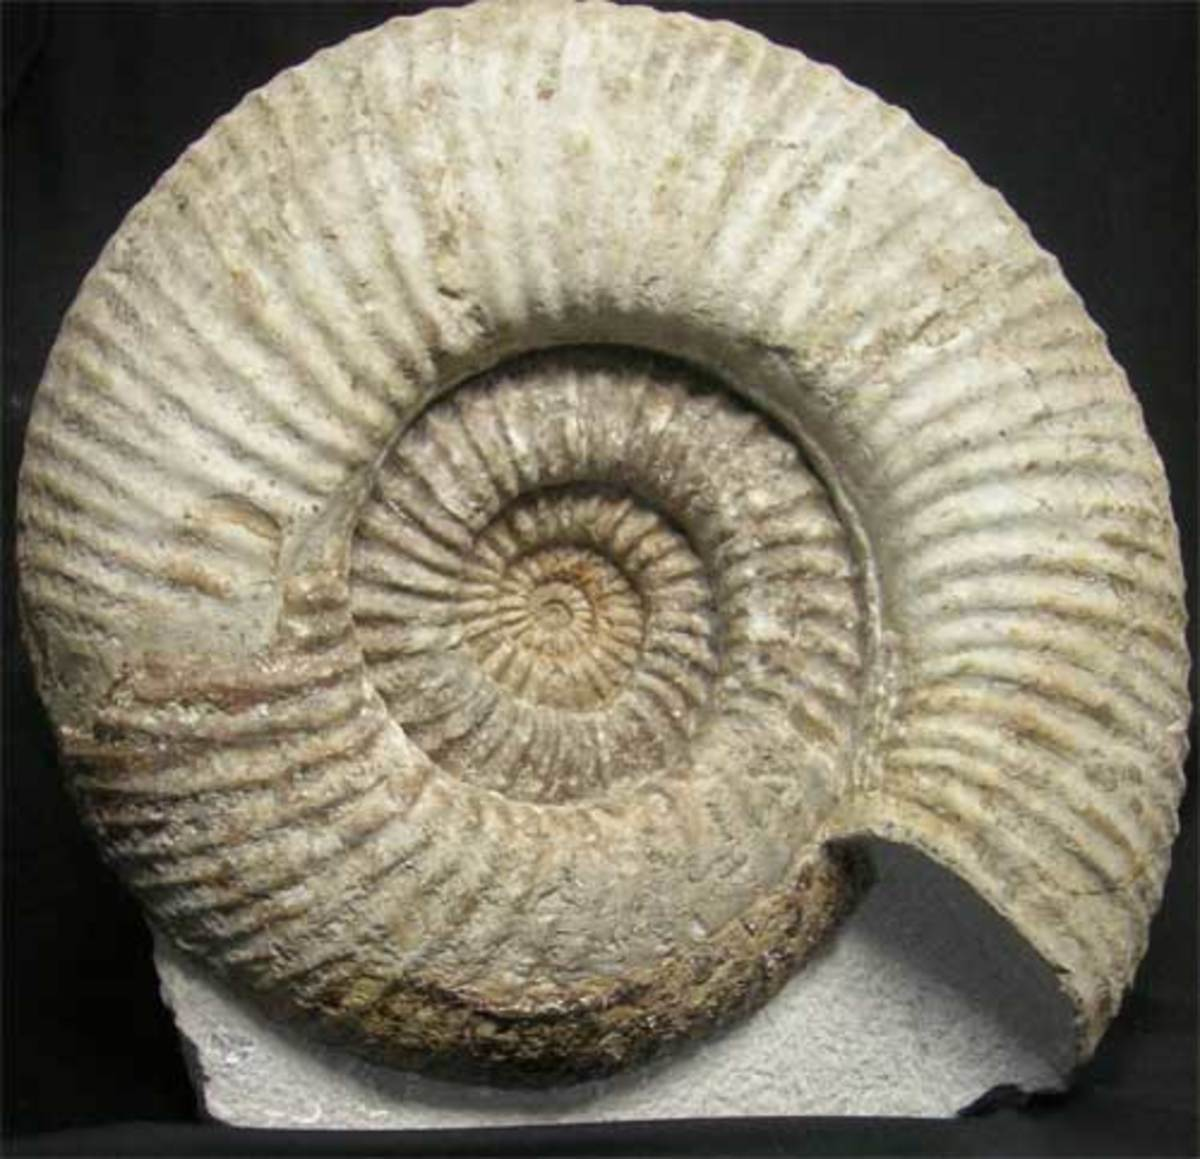 A large ammonite specimen from Portland